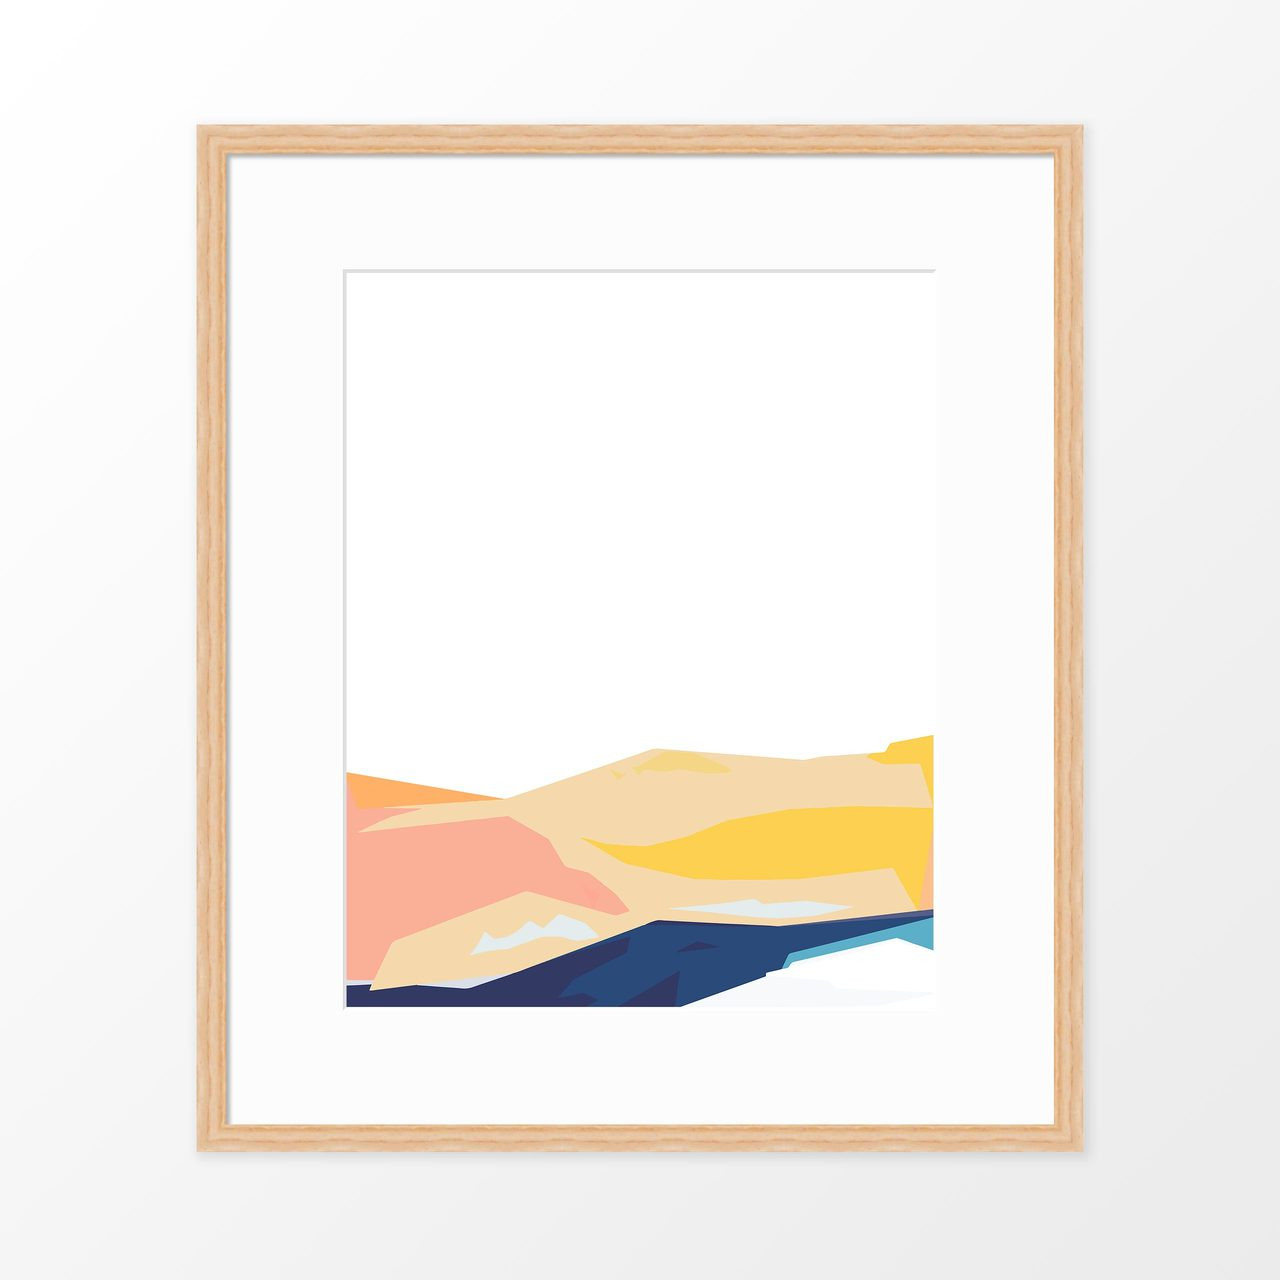 'Coastline I' Abstract Art Print from The Printed Home